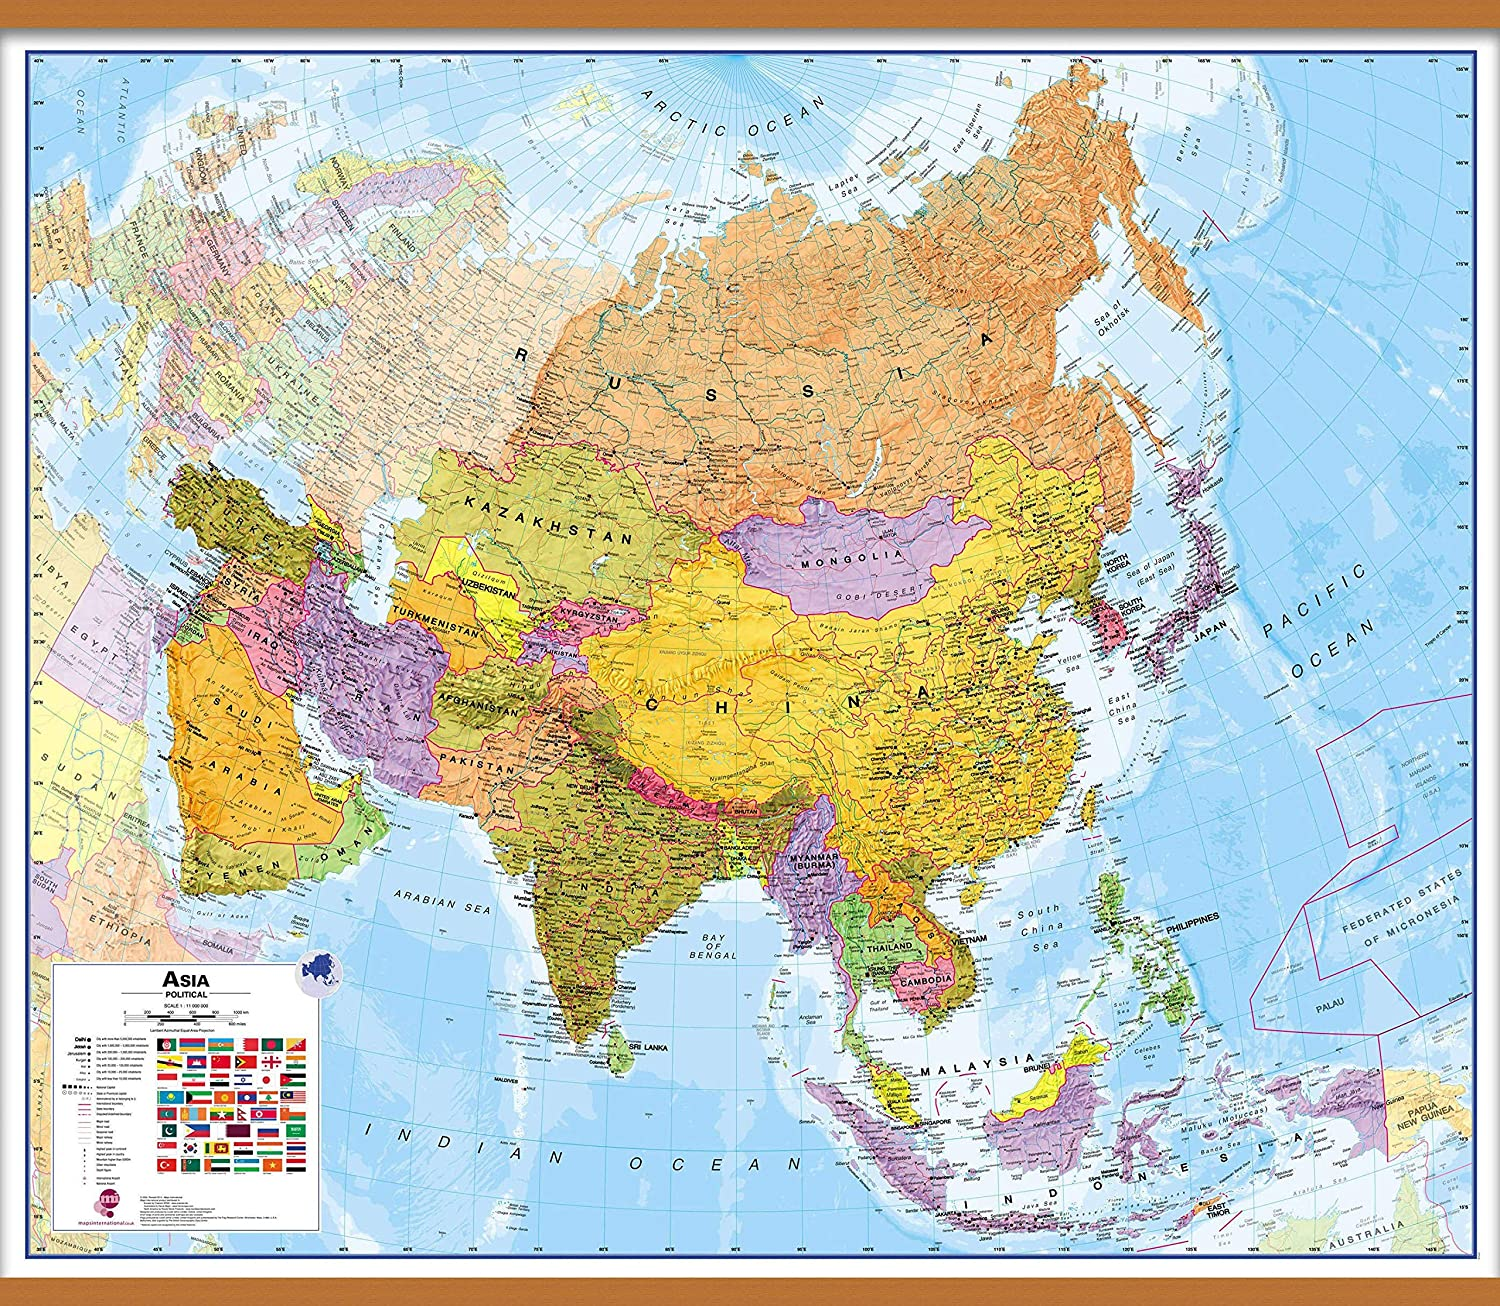 Maps International Large Political Asia Wall Map - Laminated - 47 x 39